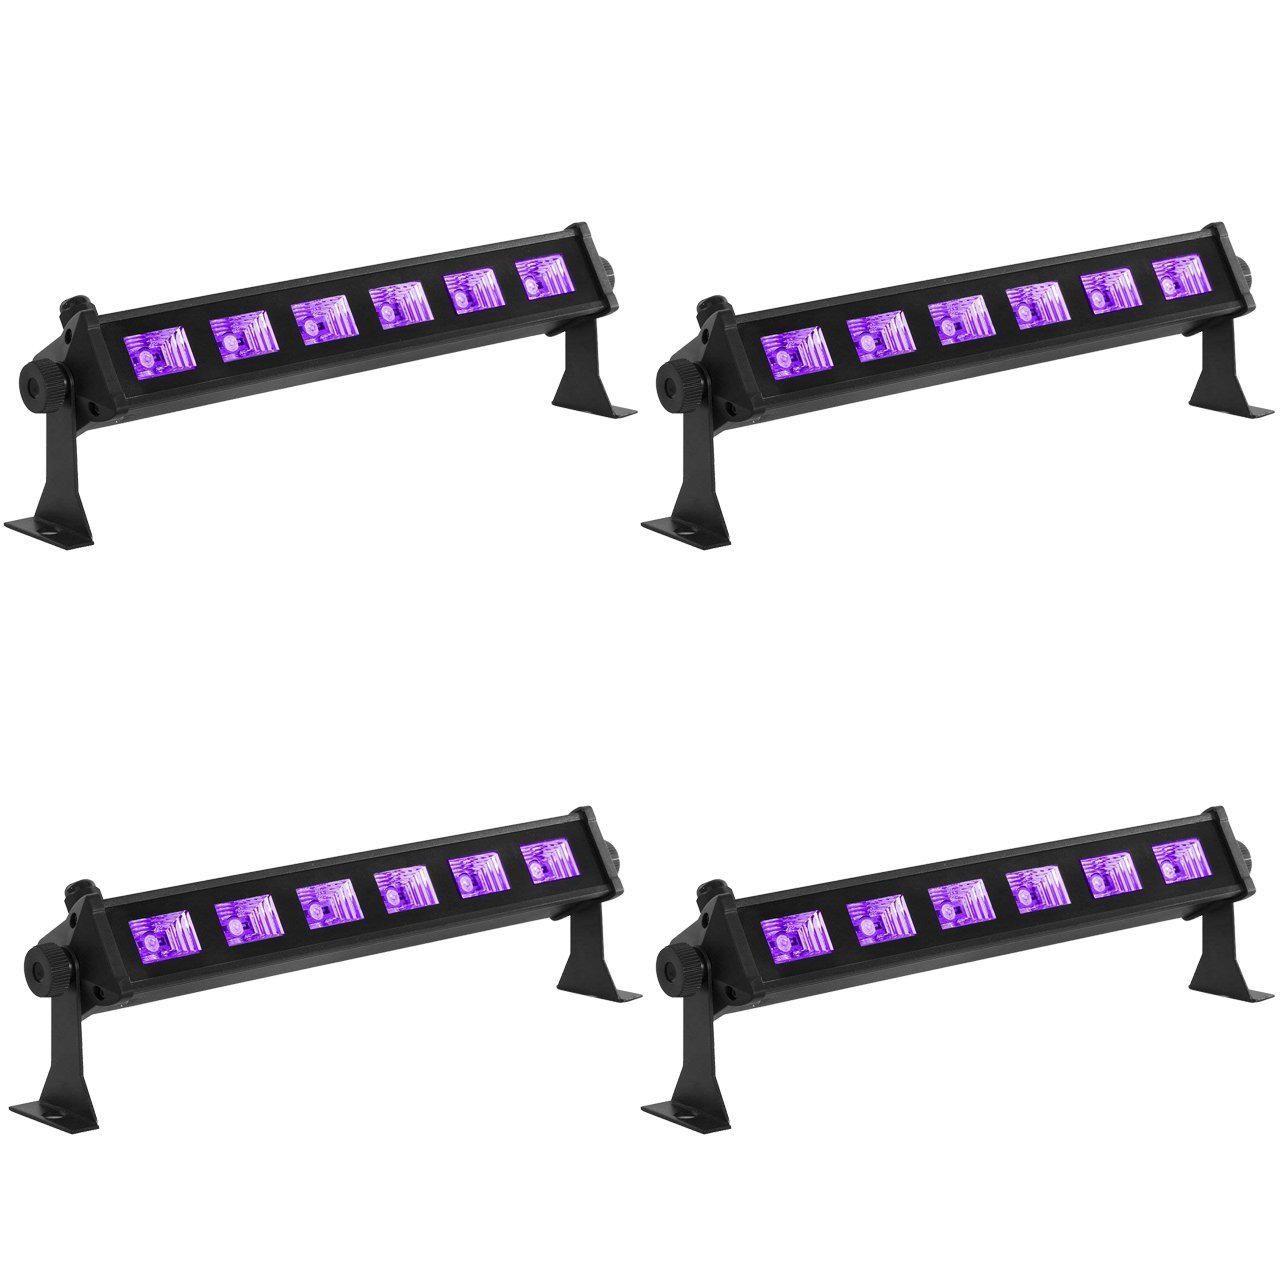 Eyourlife 6x3W LED Blacklights UV Bar Black Lights Fixture for Party DJ Stage Lighting Metal Housing Black (1 Pack 6x3W LED Blacklights) 18W 6 LED UV Black Light